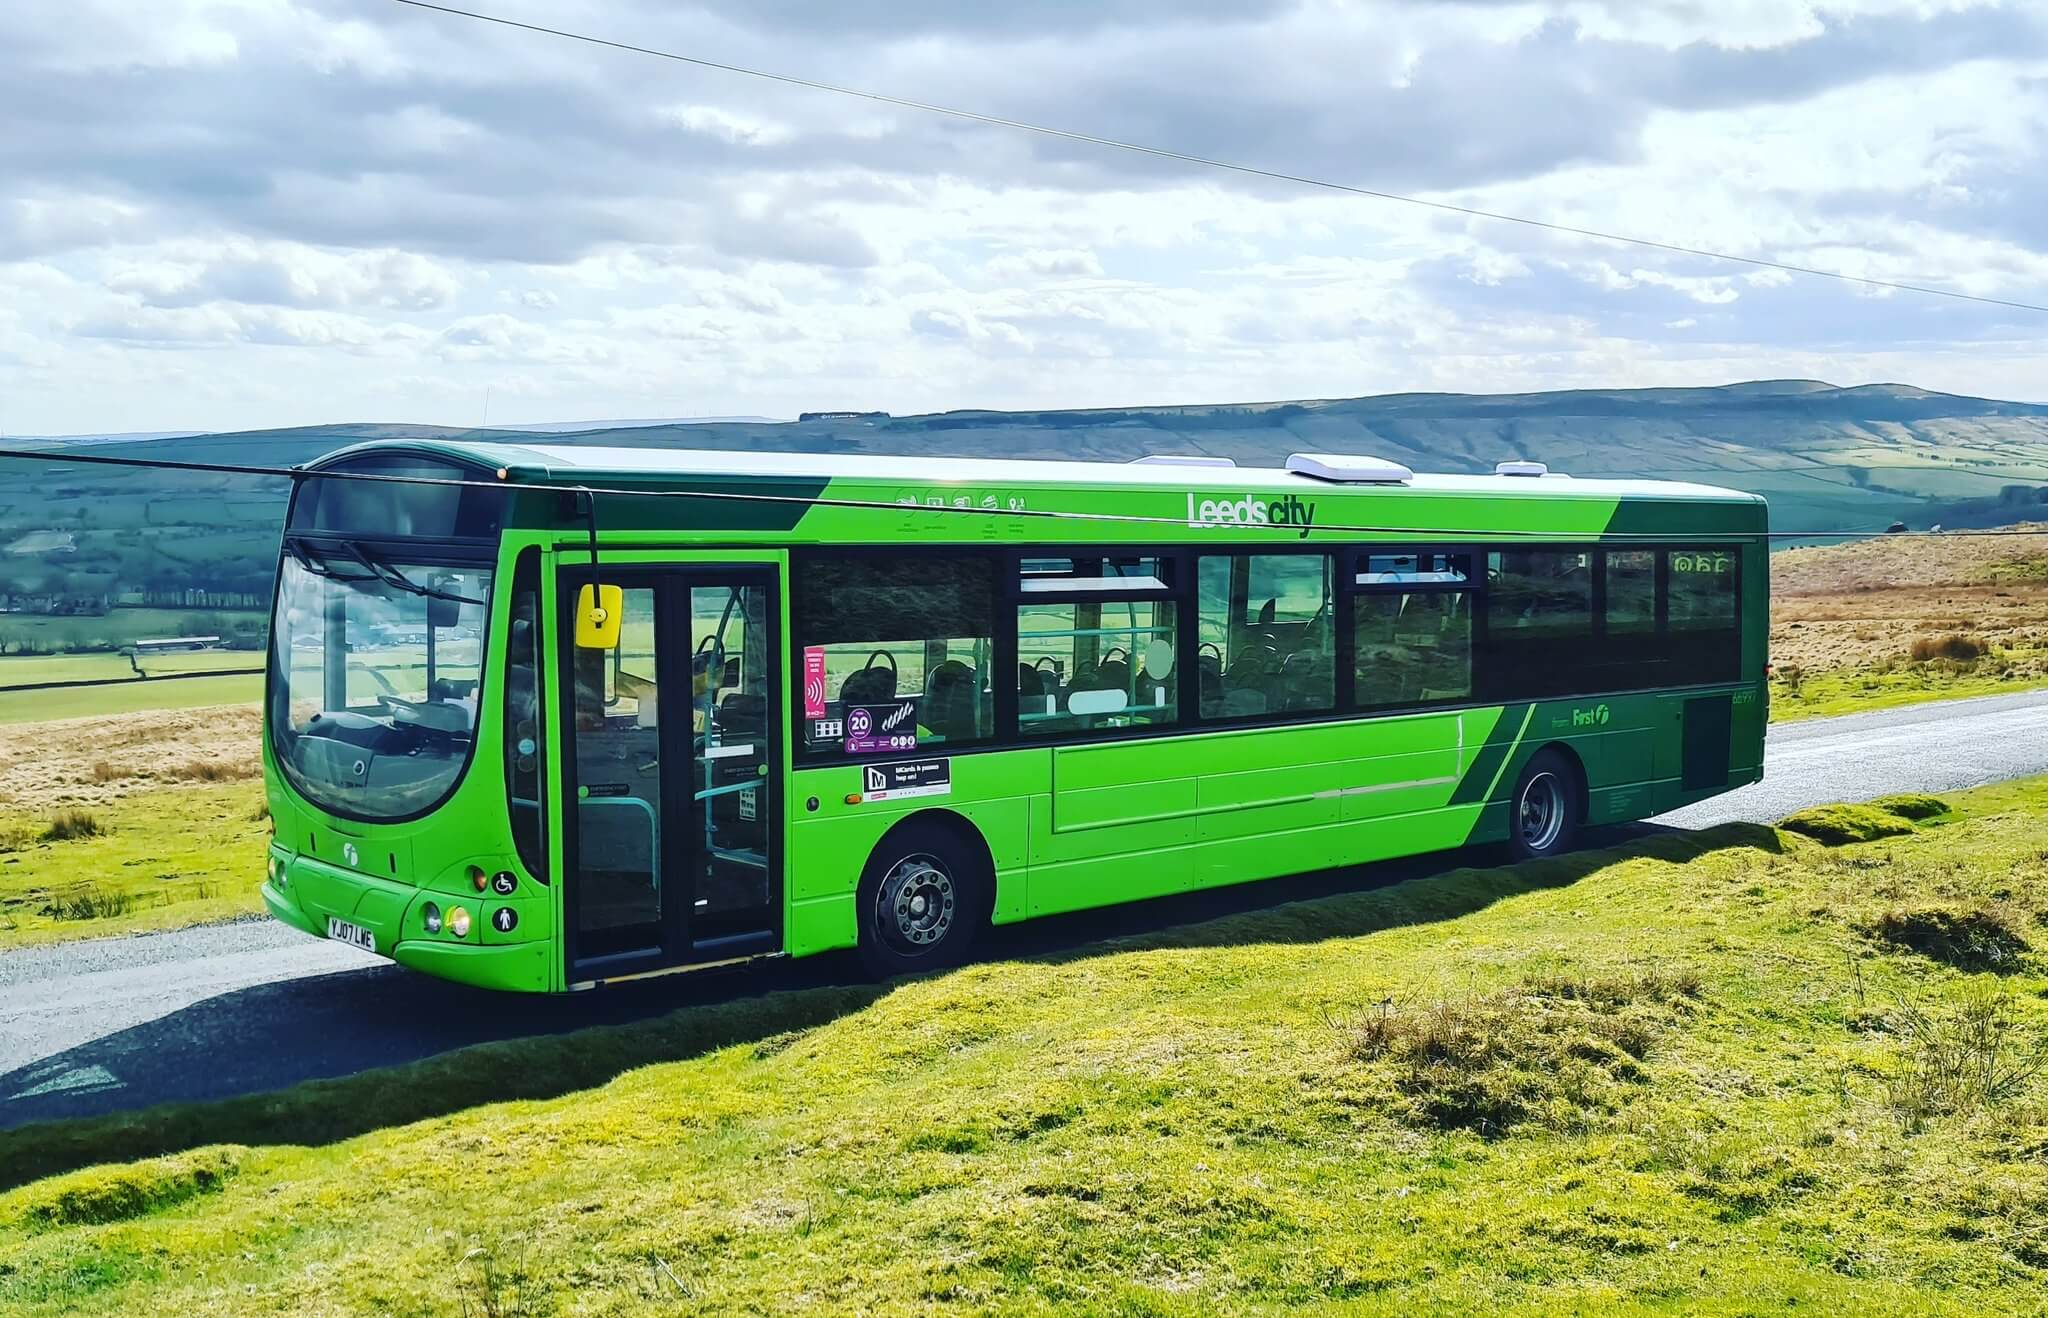 DALESBus summer services return to the Yorkshire Dales starting on Saturday with the return of the popular 74 service.